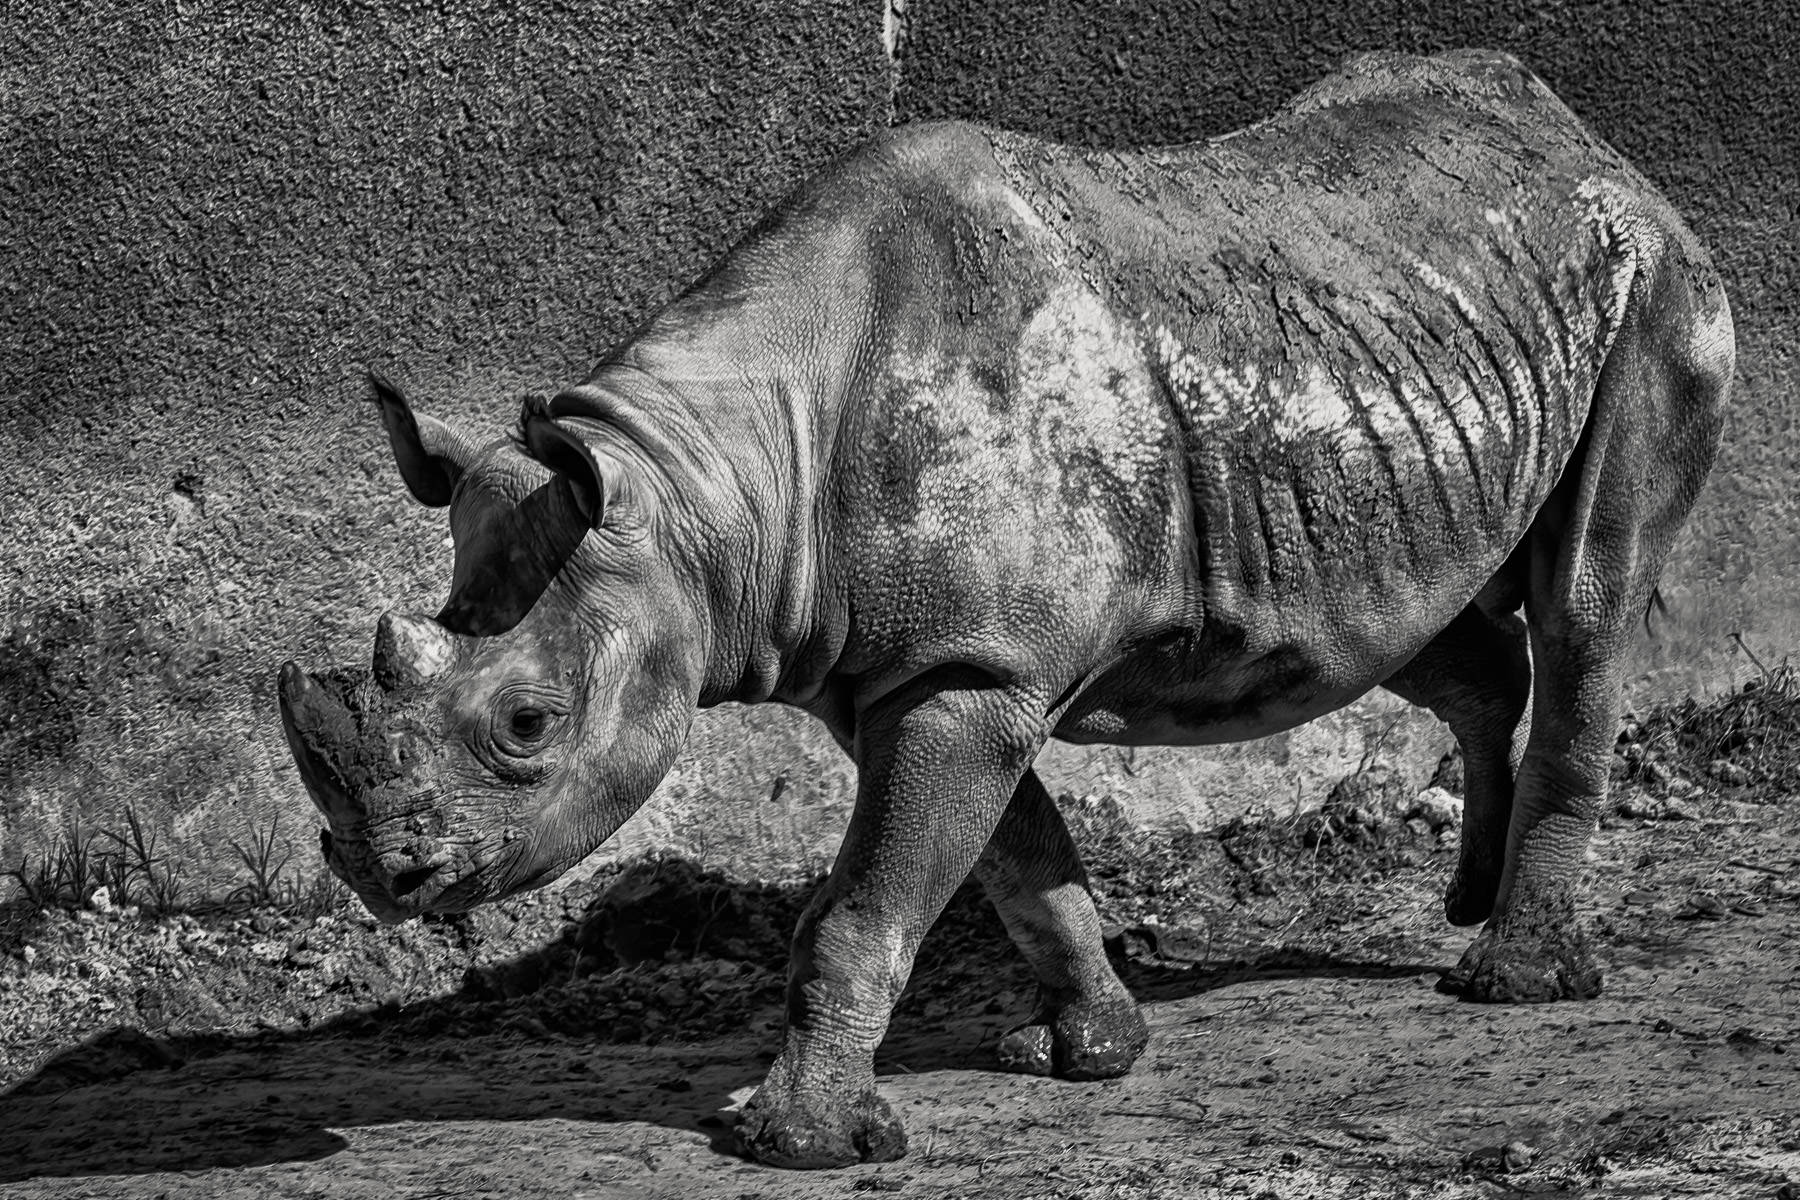 A rhinoceros walks through his habitat at Tyler, Texas' Caldwell Zoo.